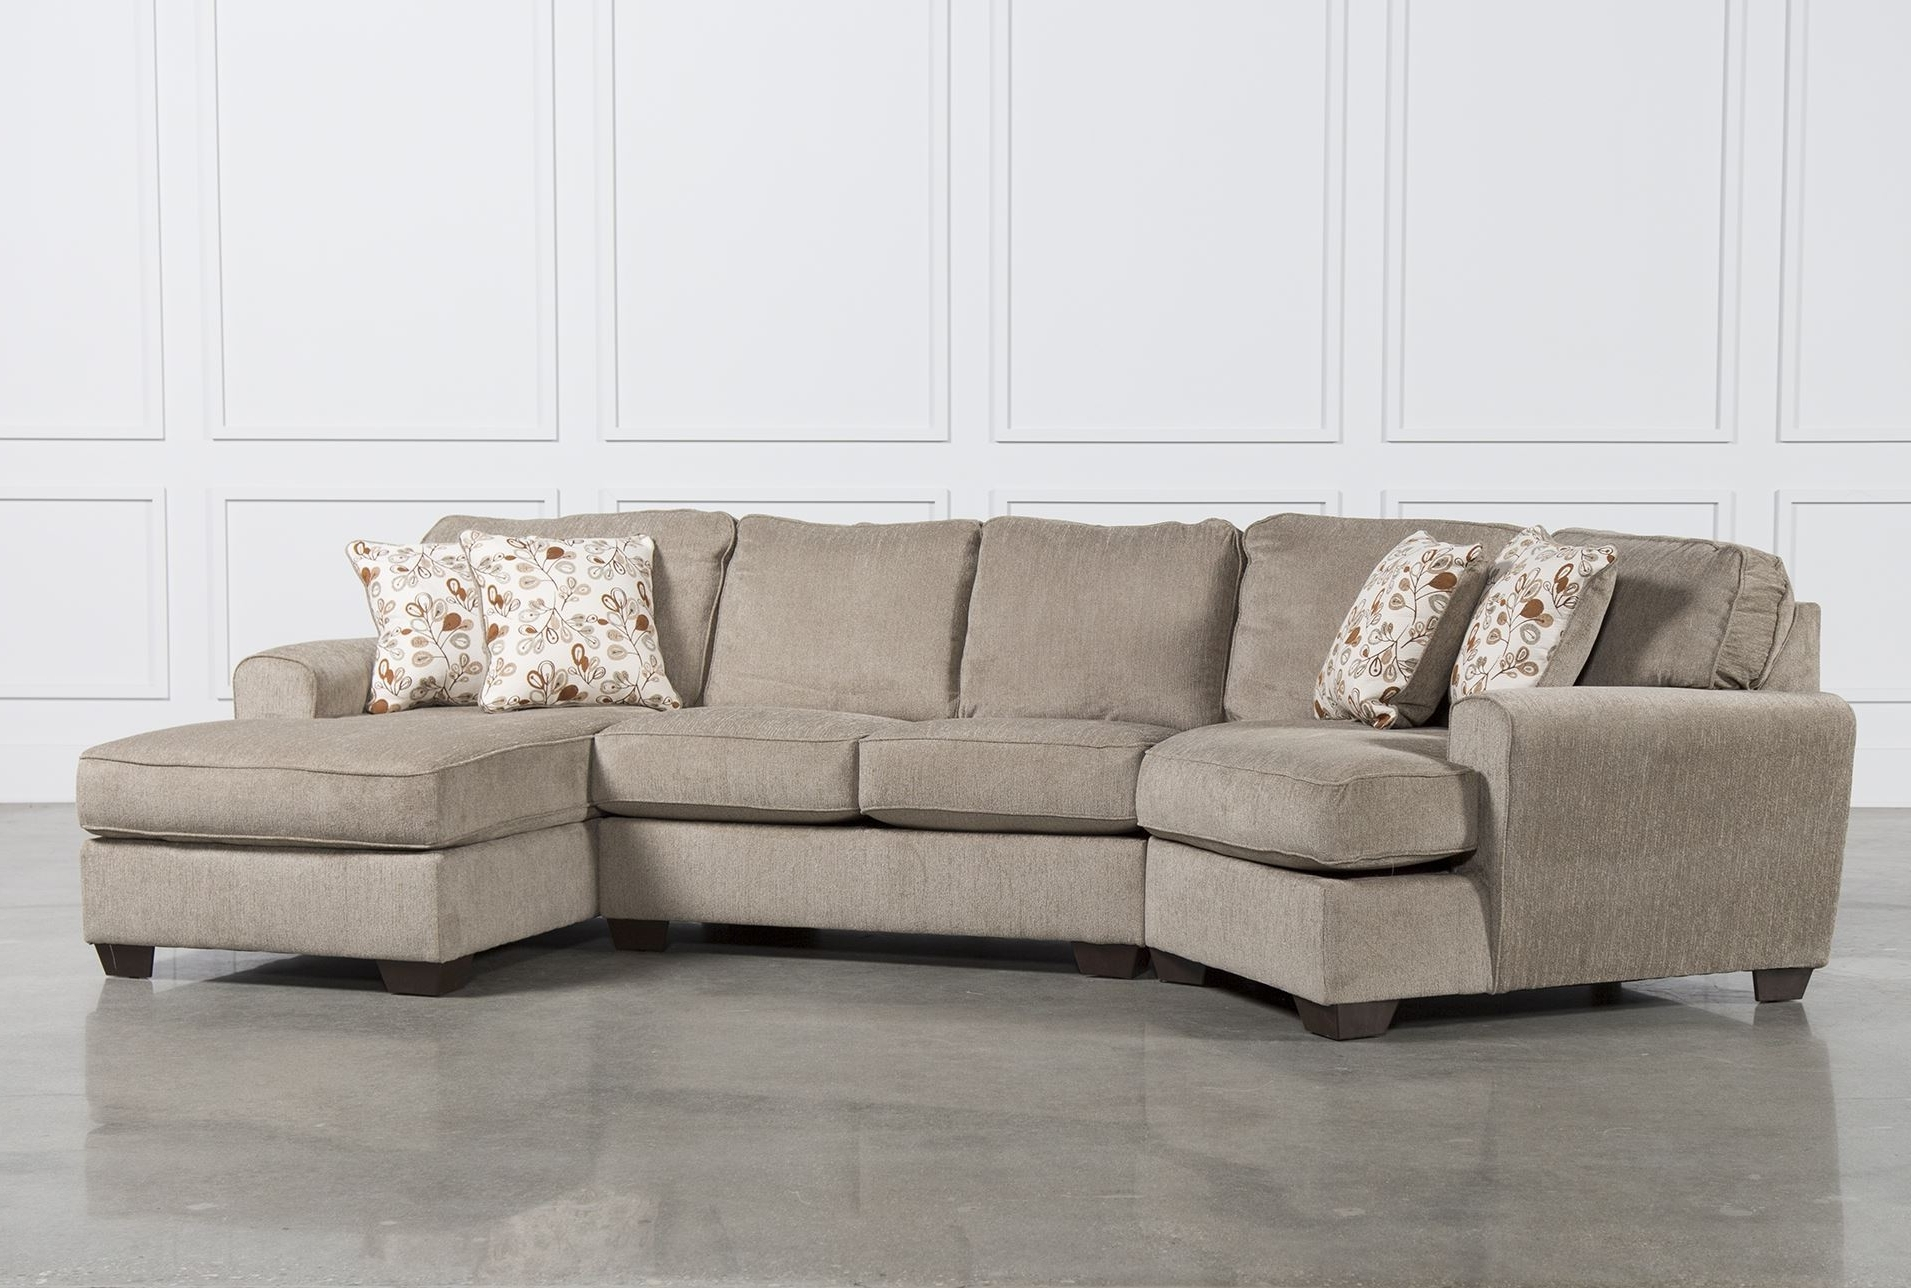 Gta Sectional Sofas Throughout Fashionable Furniture : Sectional Sofa Fabric Rc 216 088 Recliner Corner Couch (Gallery 3 of 15)